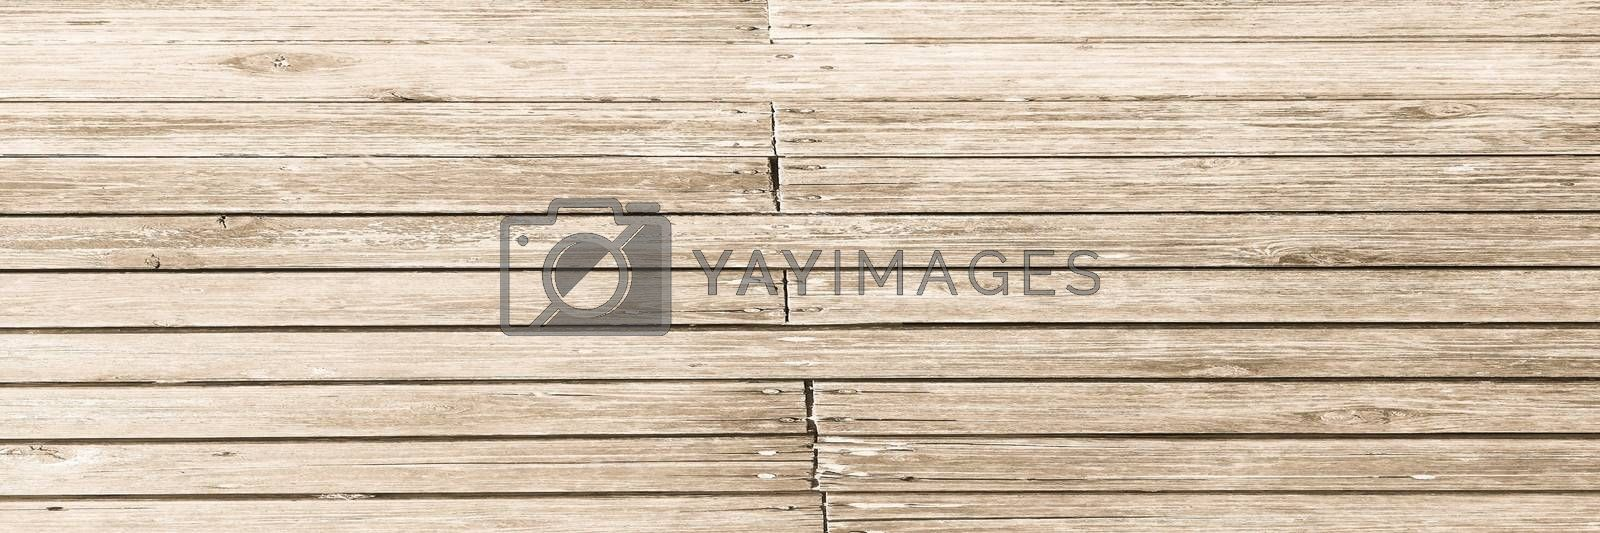 Wood texture background, wood planks. Grunge wood, painted wooden wall pattern. by titco